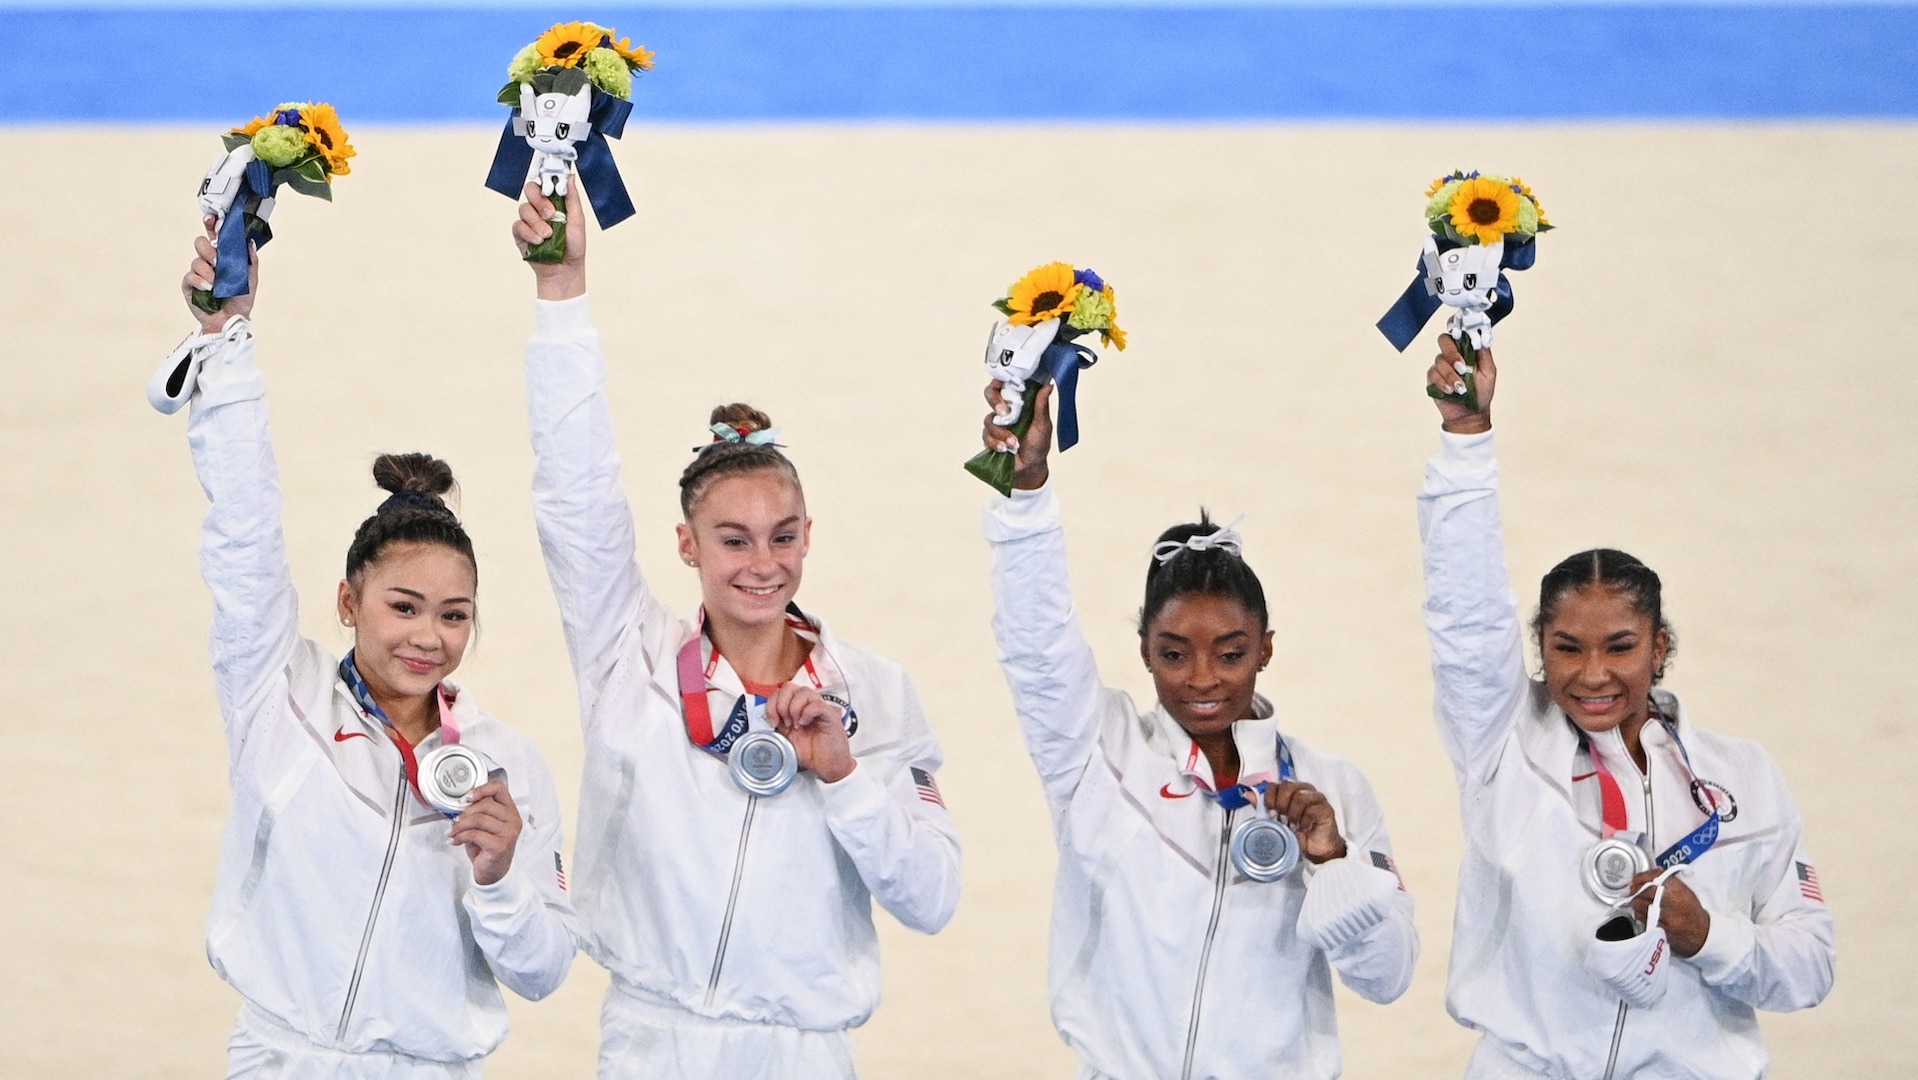 Sunisa Lee, Grace McCallum, Simone Biles and Jordan Chiles celebrate winning the silver medal during the podium ceremony of the artistic gymnastics women's team final during the Tokyo 2020 Olympics